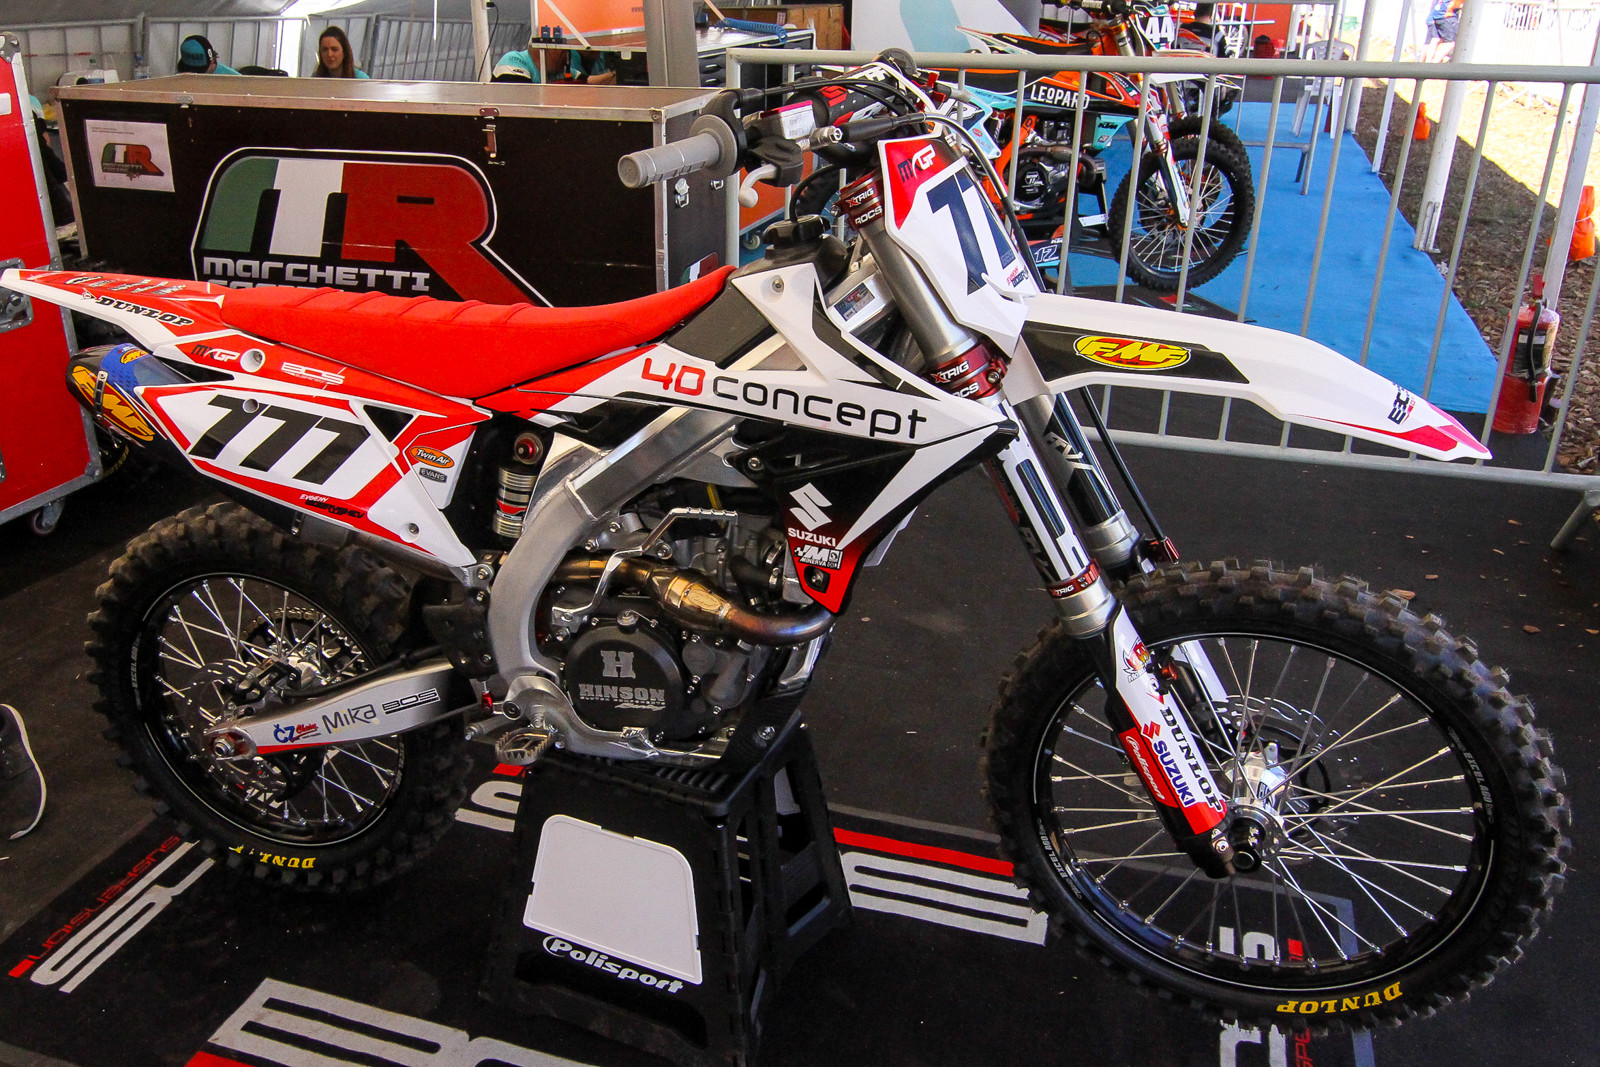 Another new team is the BOS GP effort which is operated by BOS suspension....a high-end component brand from Rally, single seater car racing and mountain biking. The team was supposed to debut this season with Jordi Tixier and a few other riders aboard KTMs but they're out with injuries for the first few rounds. The team signed Evgeny Bobryshev to race the season as well but he had already inked a contract with a British-based Suzuki team for the British Championship. With this, the team decided to just field Russian-Bob aboard a RM-Z450 as they don't have any manufacture ties.